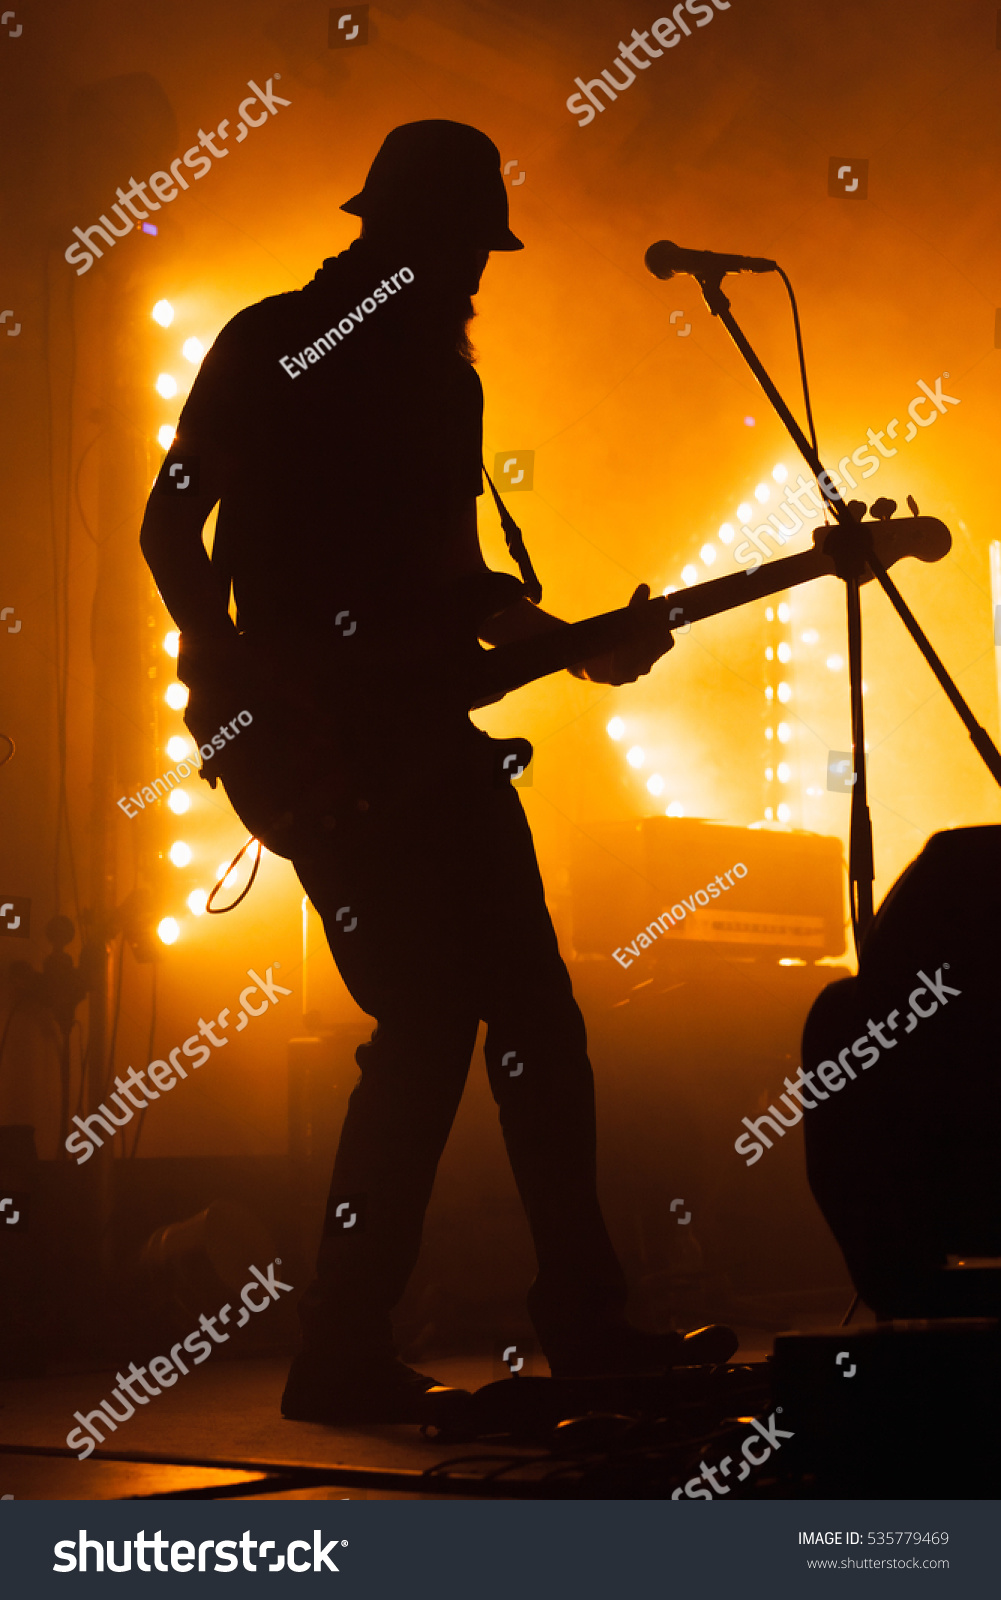 Music Themed Living Room Decor: Silhouette Bass Electric Guitar Player On Stock Photo